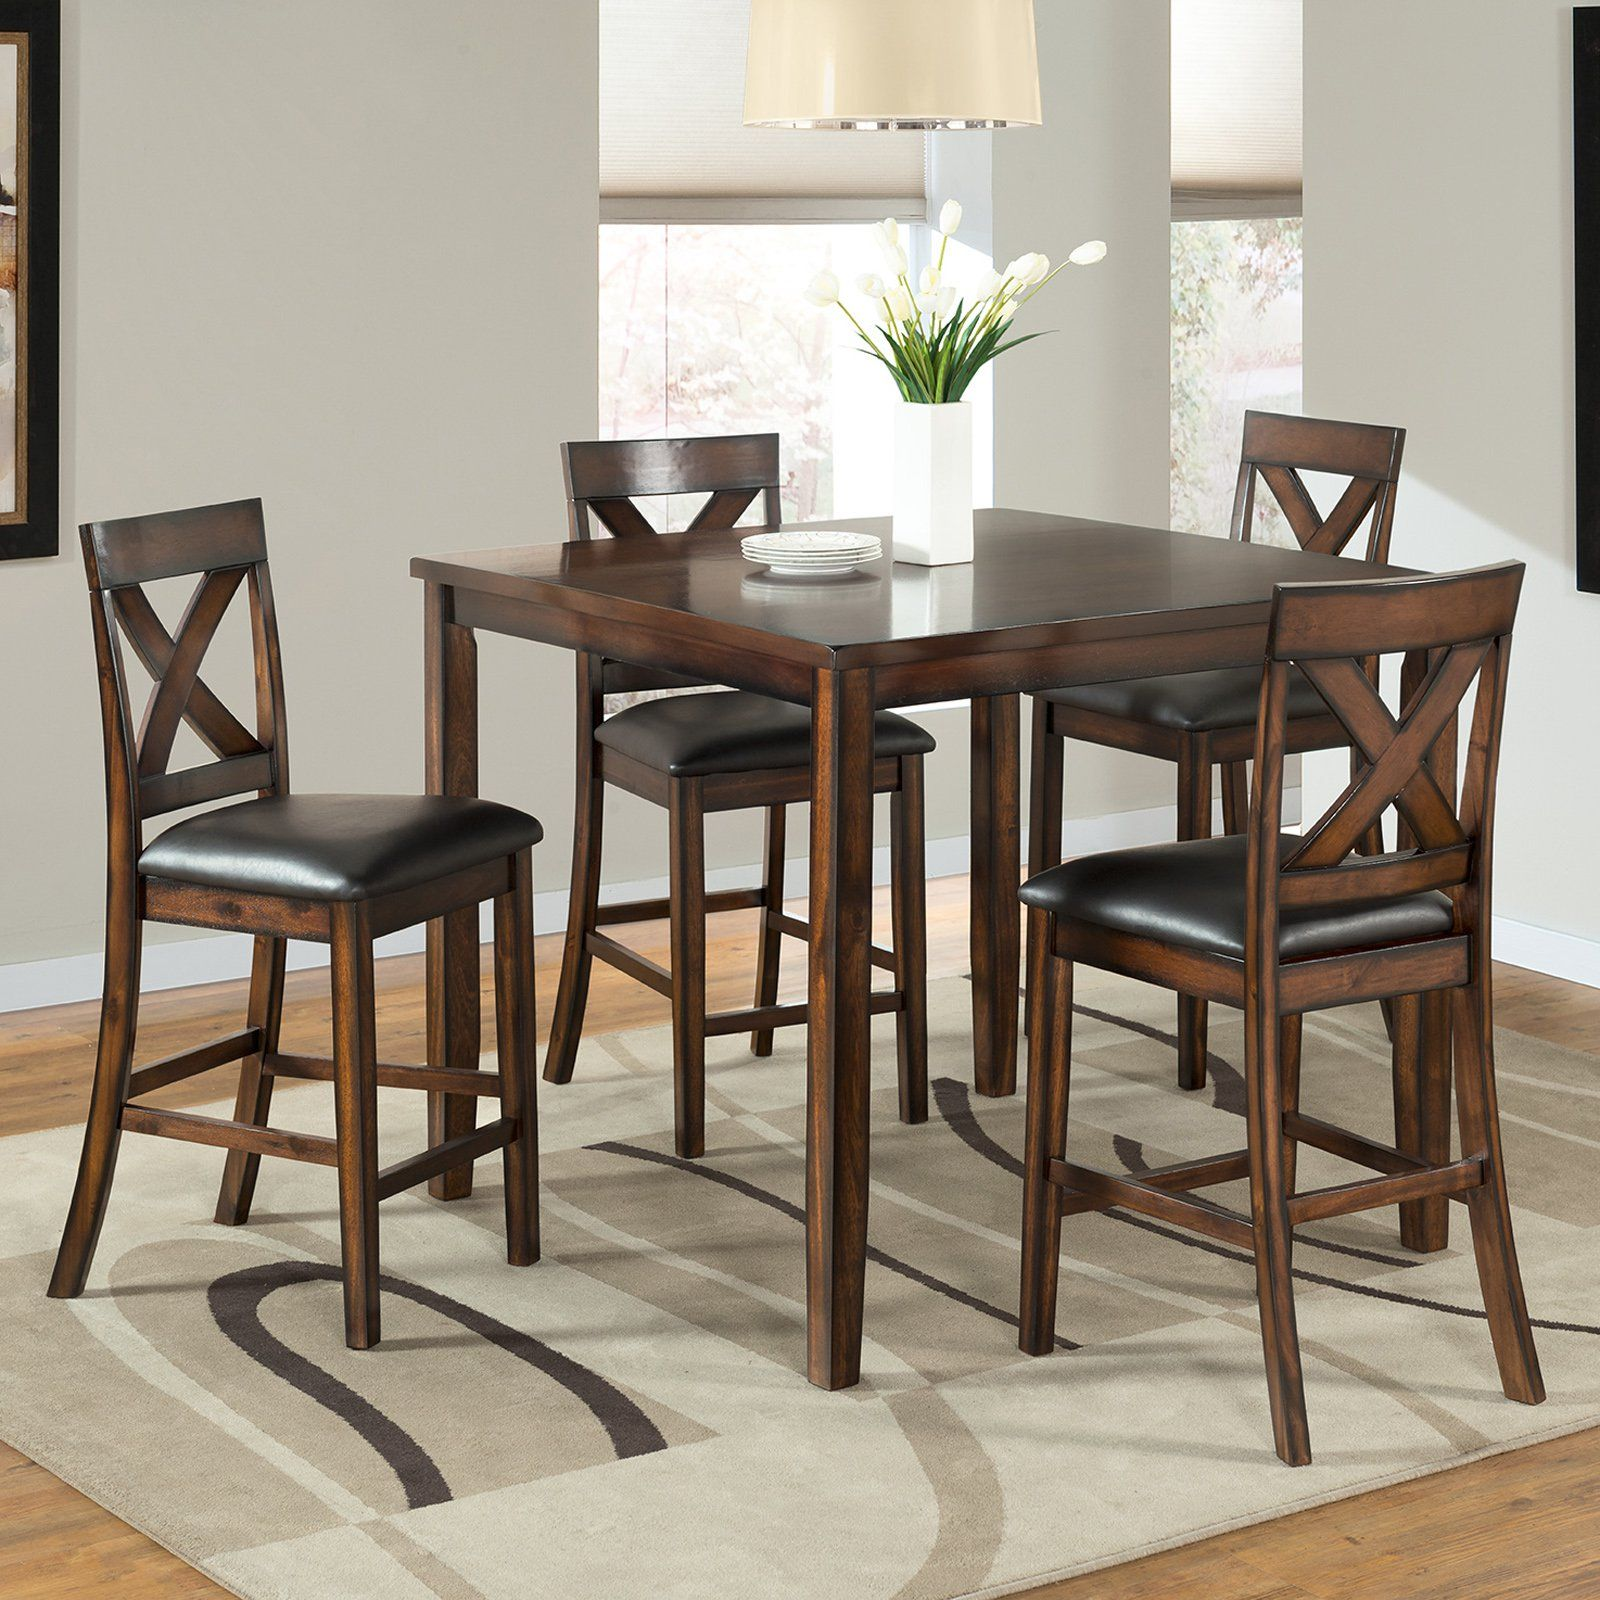 Vilo home americano 40 in square 5 piece pub table set vh525 vilo home americano 40 in square 5 piece pub table set vh525 watchthetrailerfo